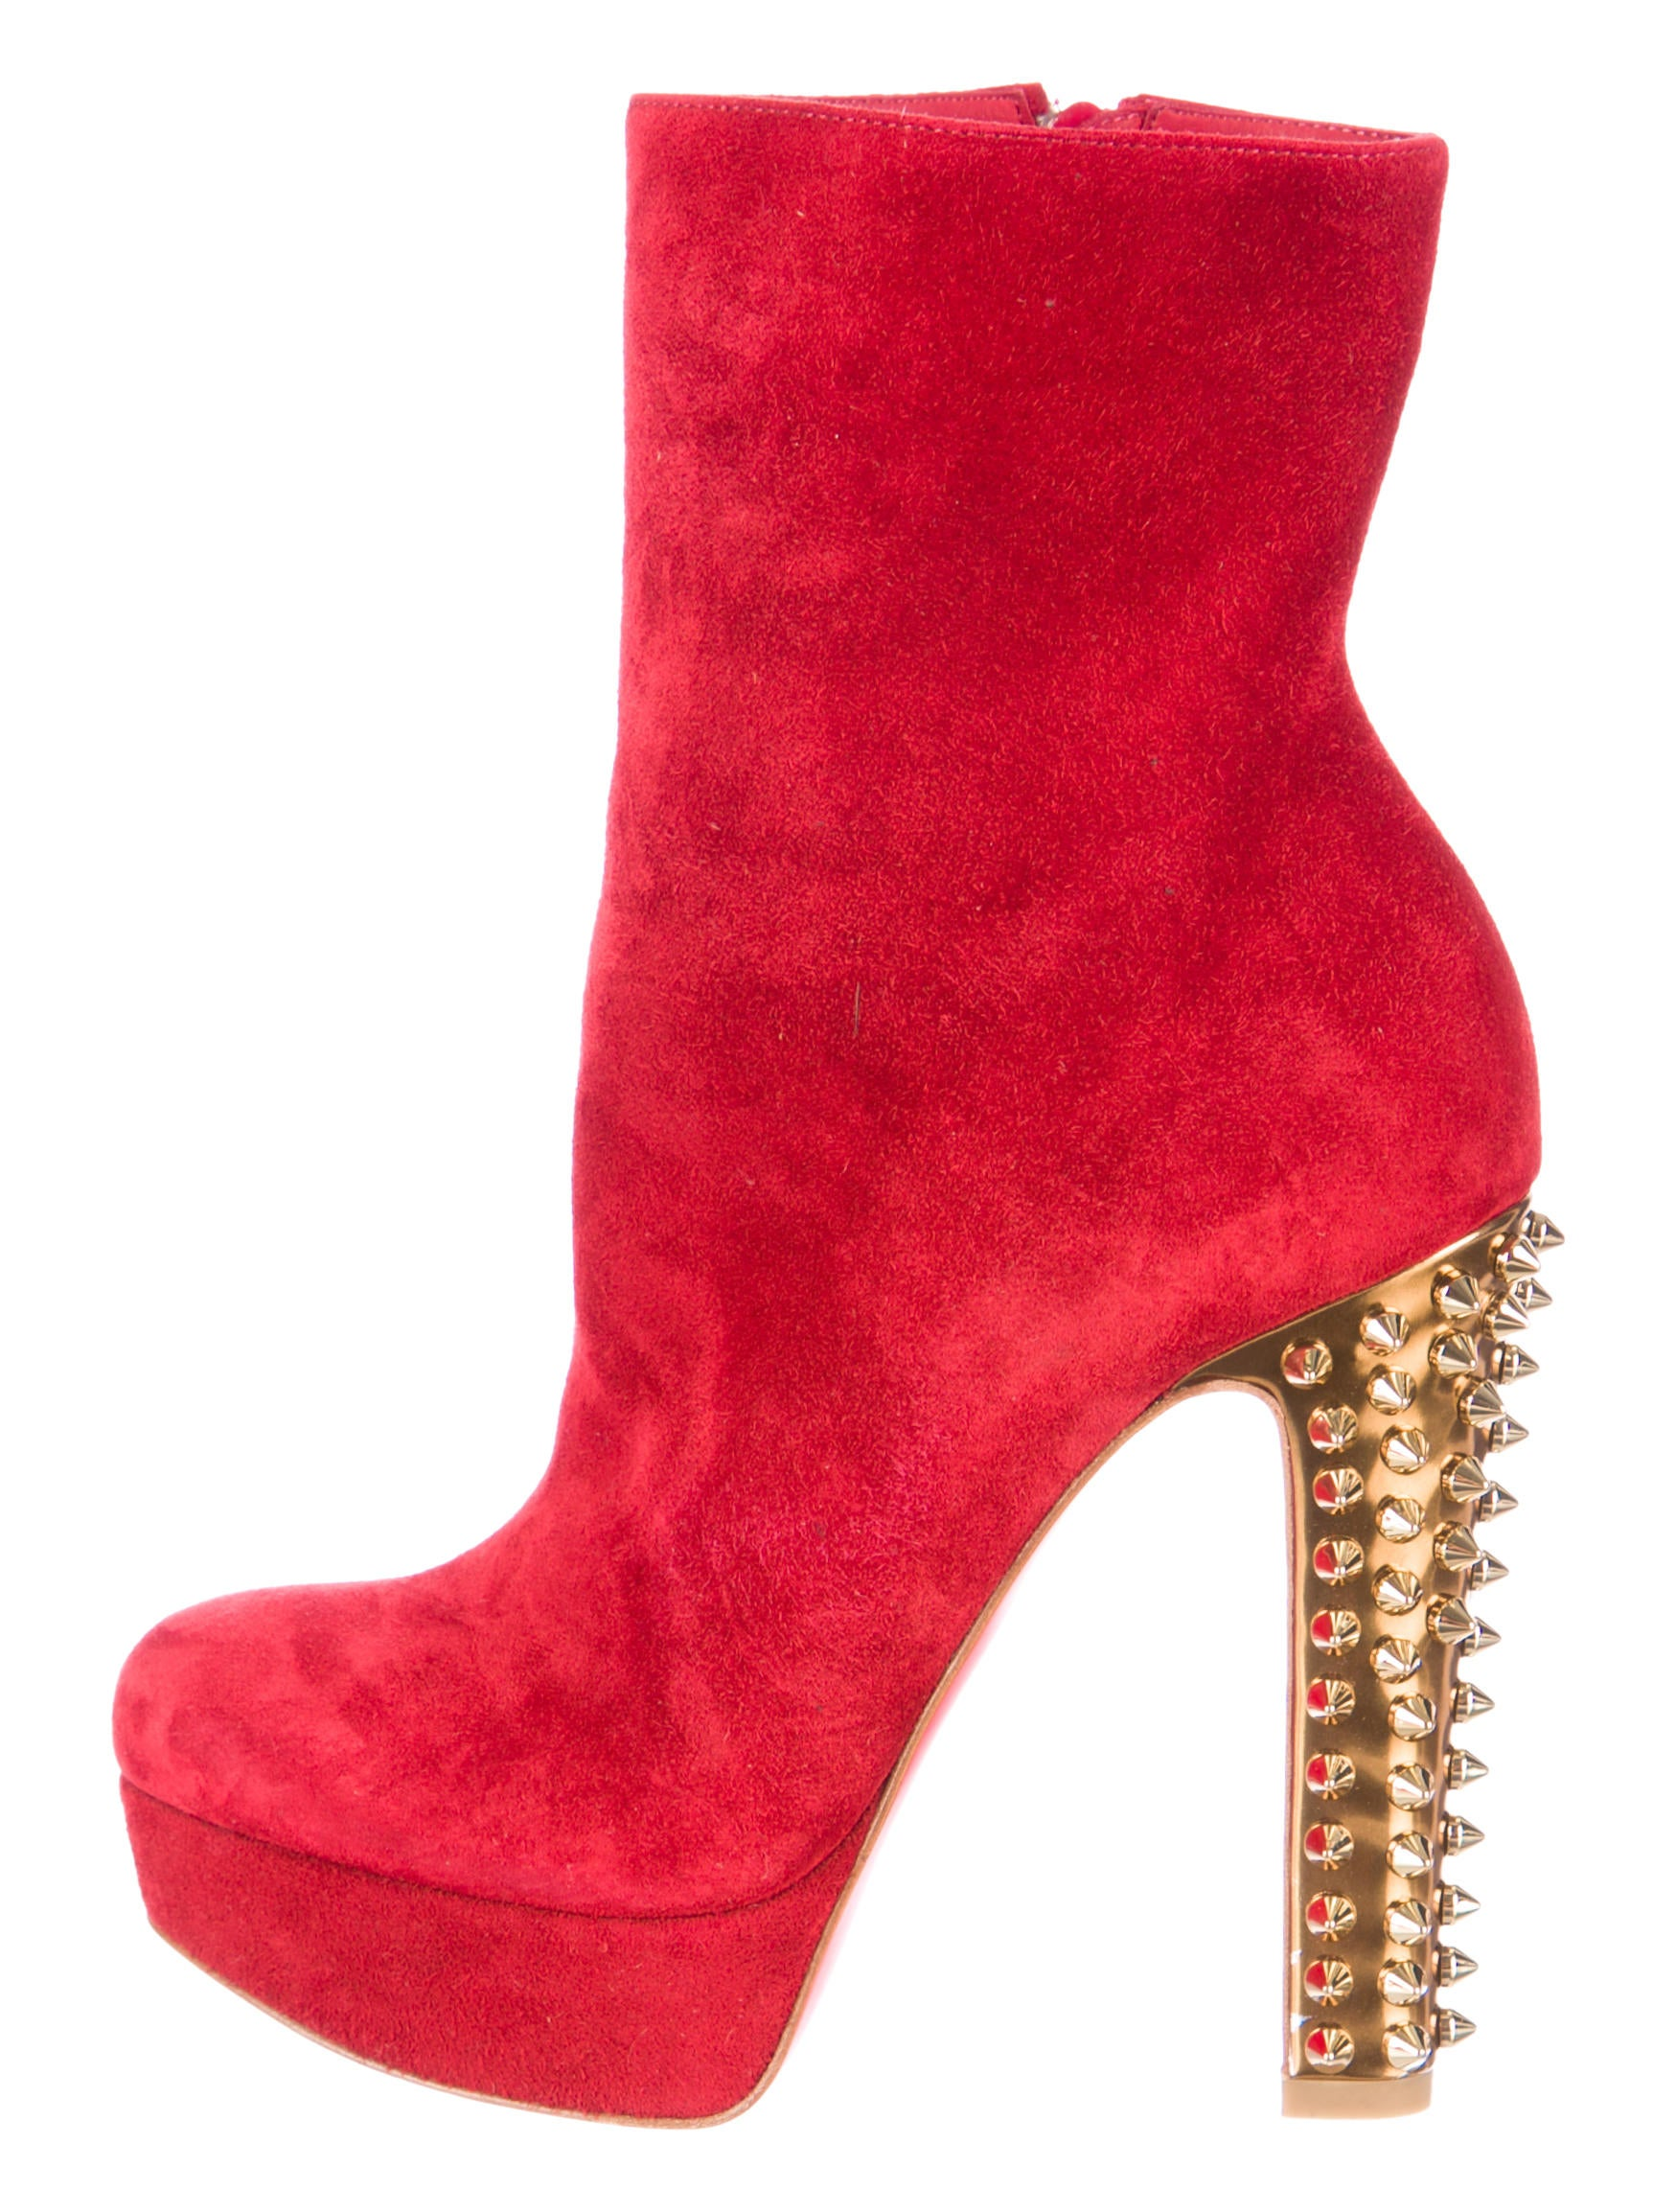 louboutin shoes - Artesur ? christian louboutin round-toe ankle boots Red suede gold ...